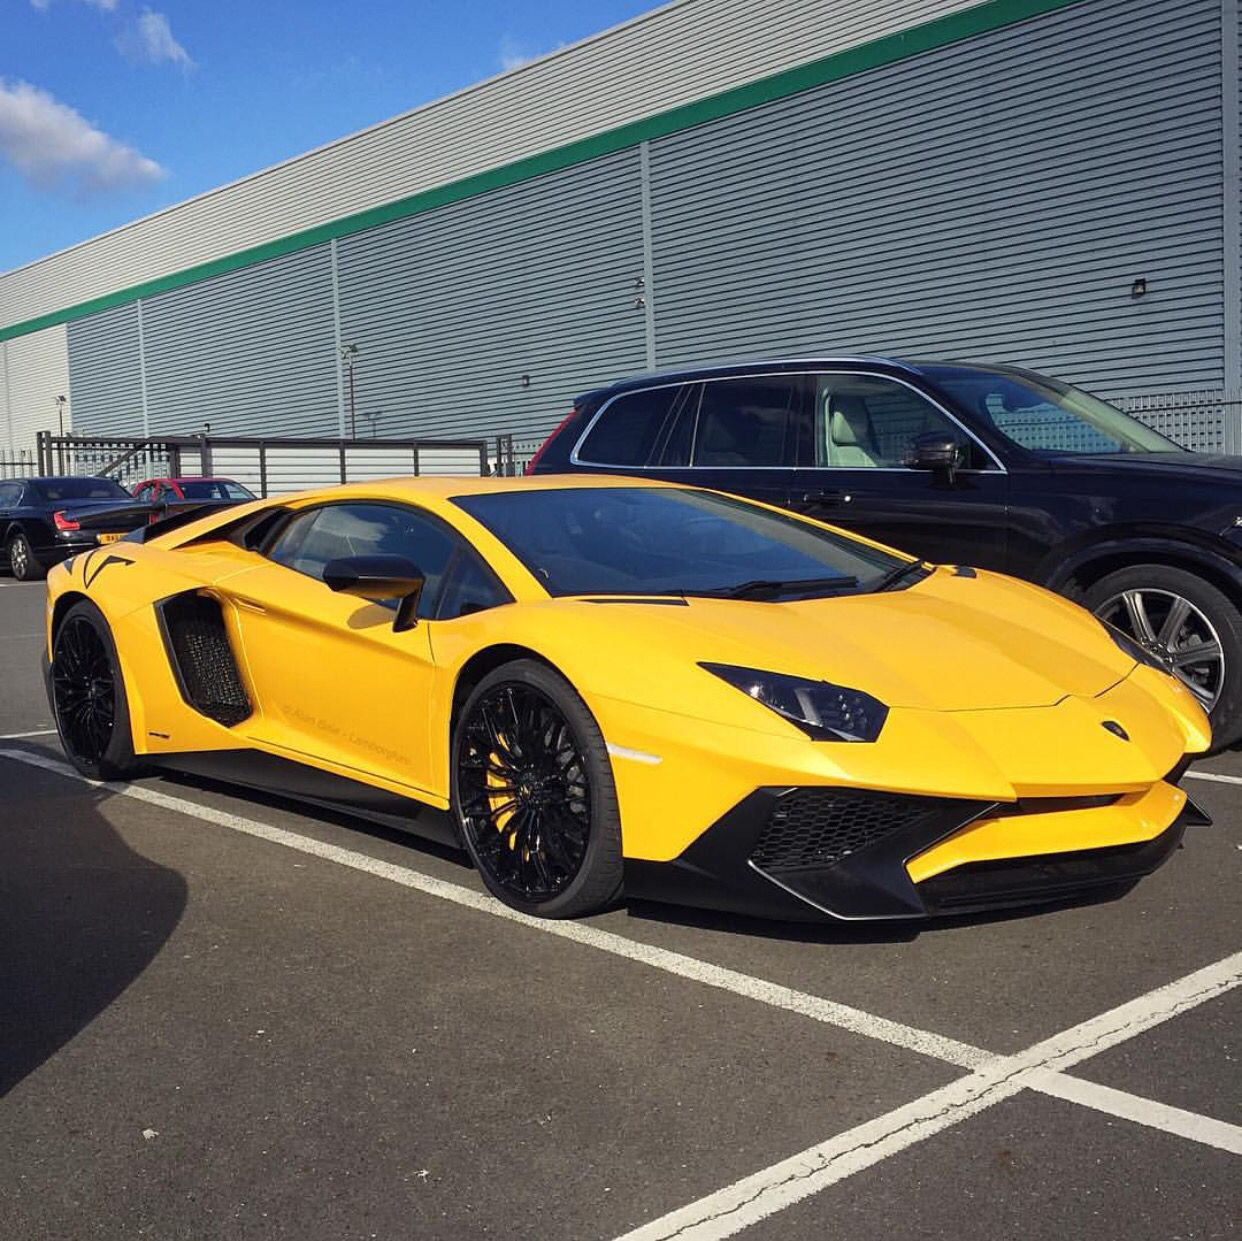 Lamborghini Aventador Super Veloce Coupe painted in Giallo Orion Photo taken by:…